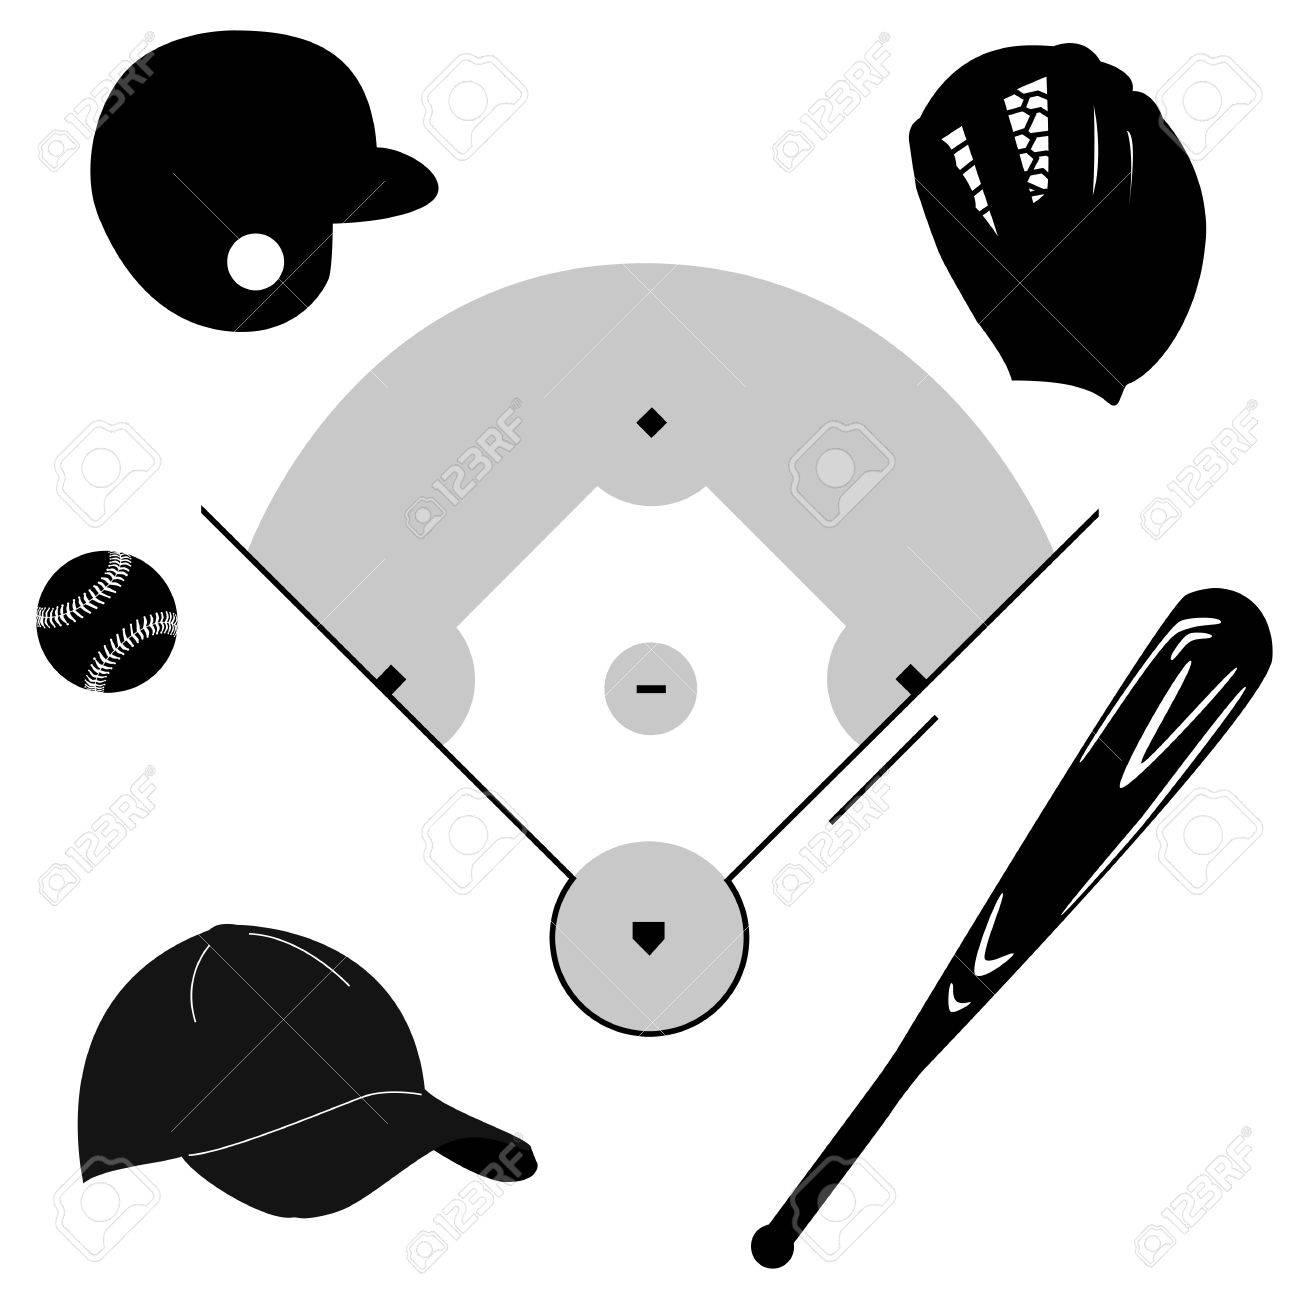 Icon set showing different baseball elements around a baseball diamond Stock Vector - 17810138